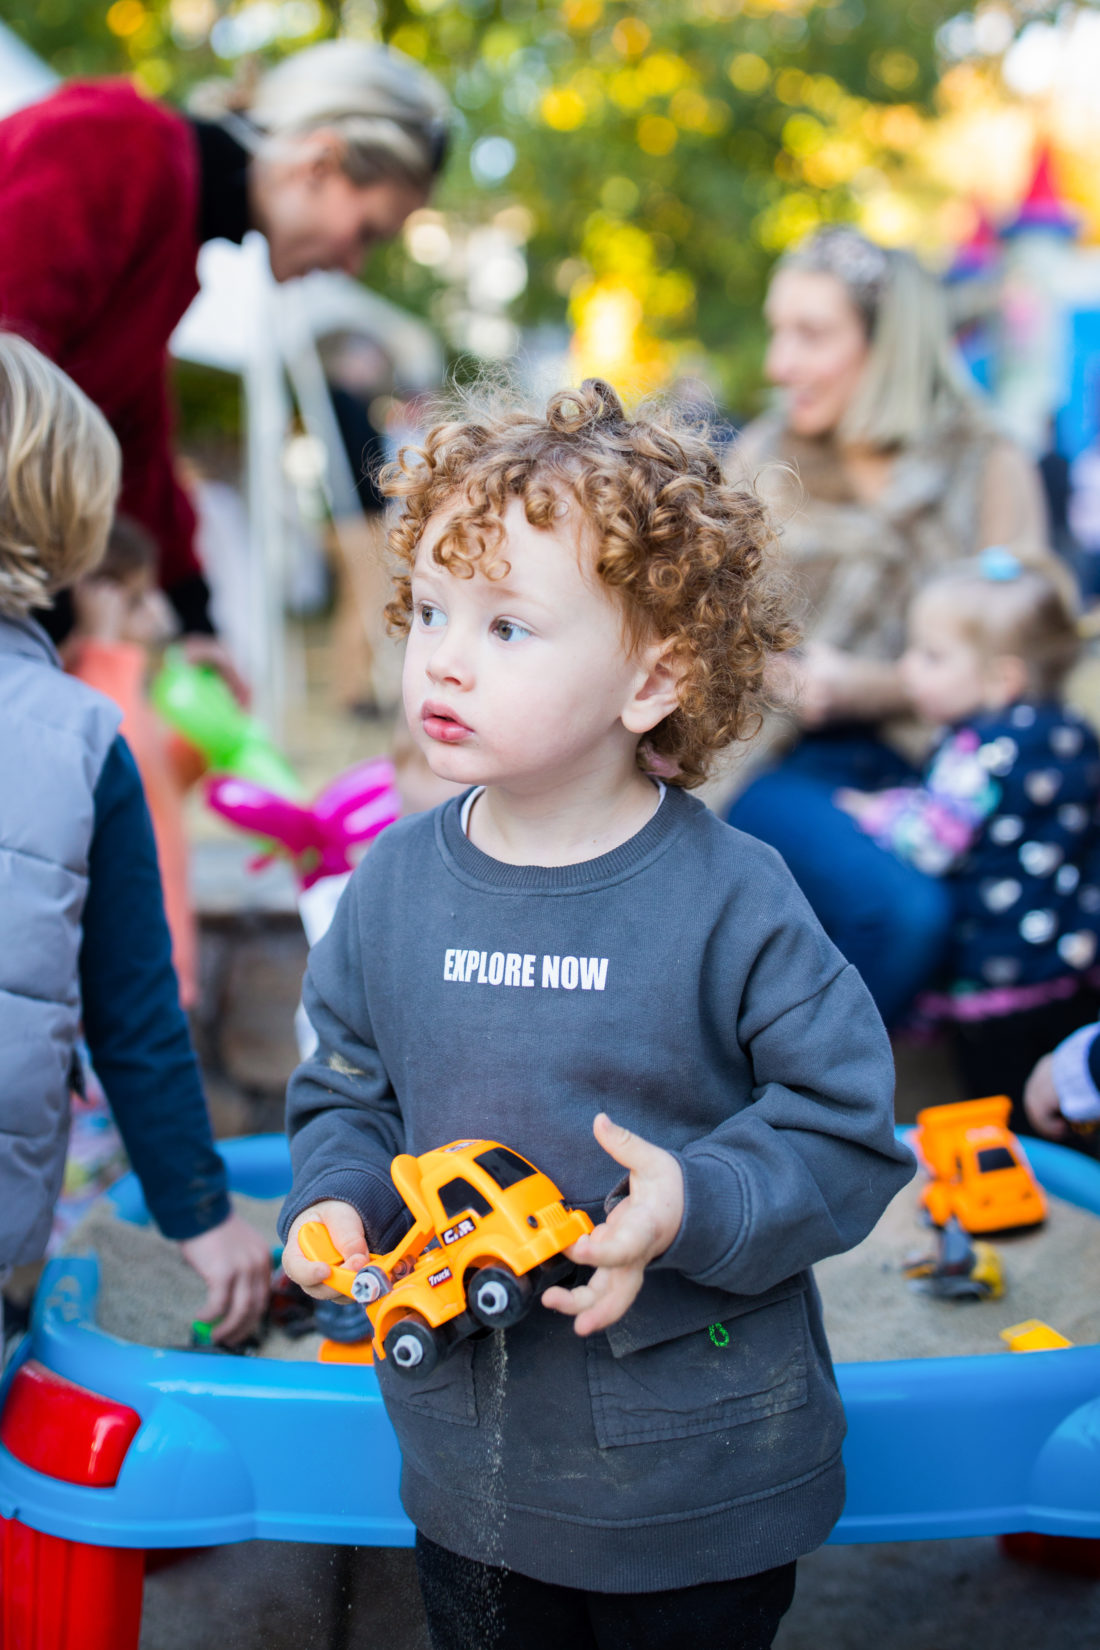 A partygoer playing with a construction truck toy at Major Martino's Construction Zone themed birthday party